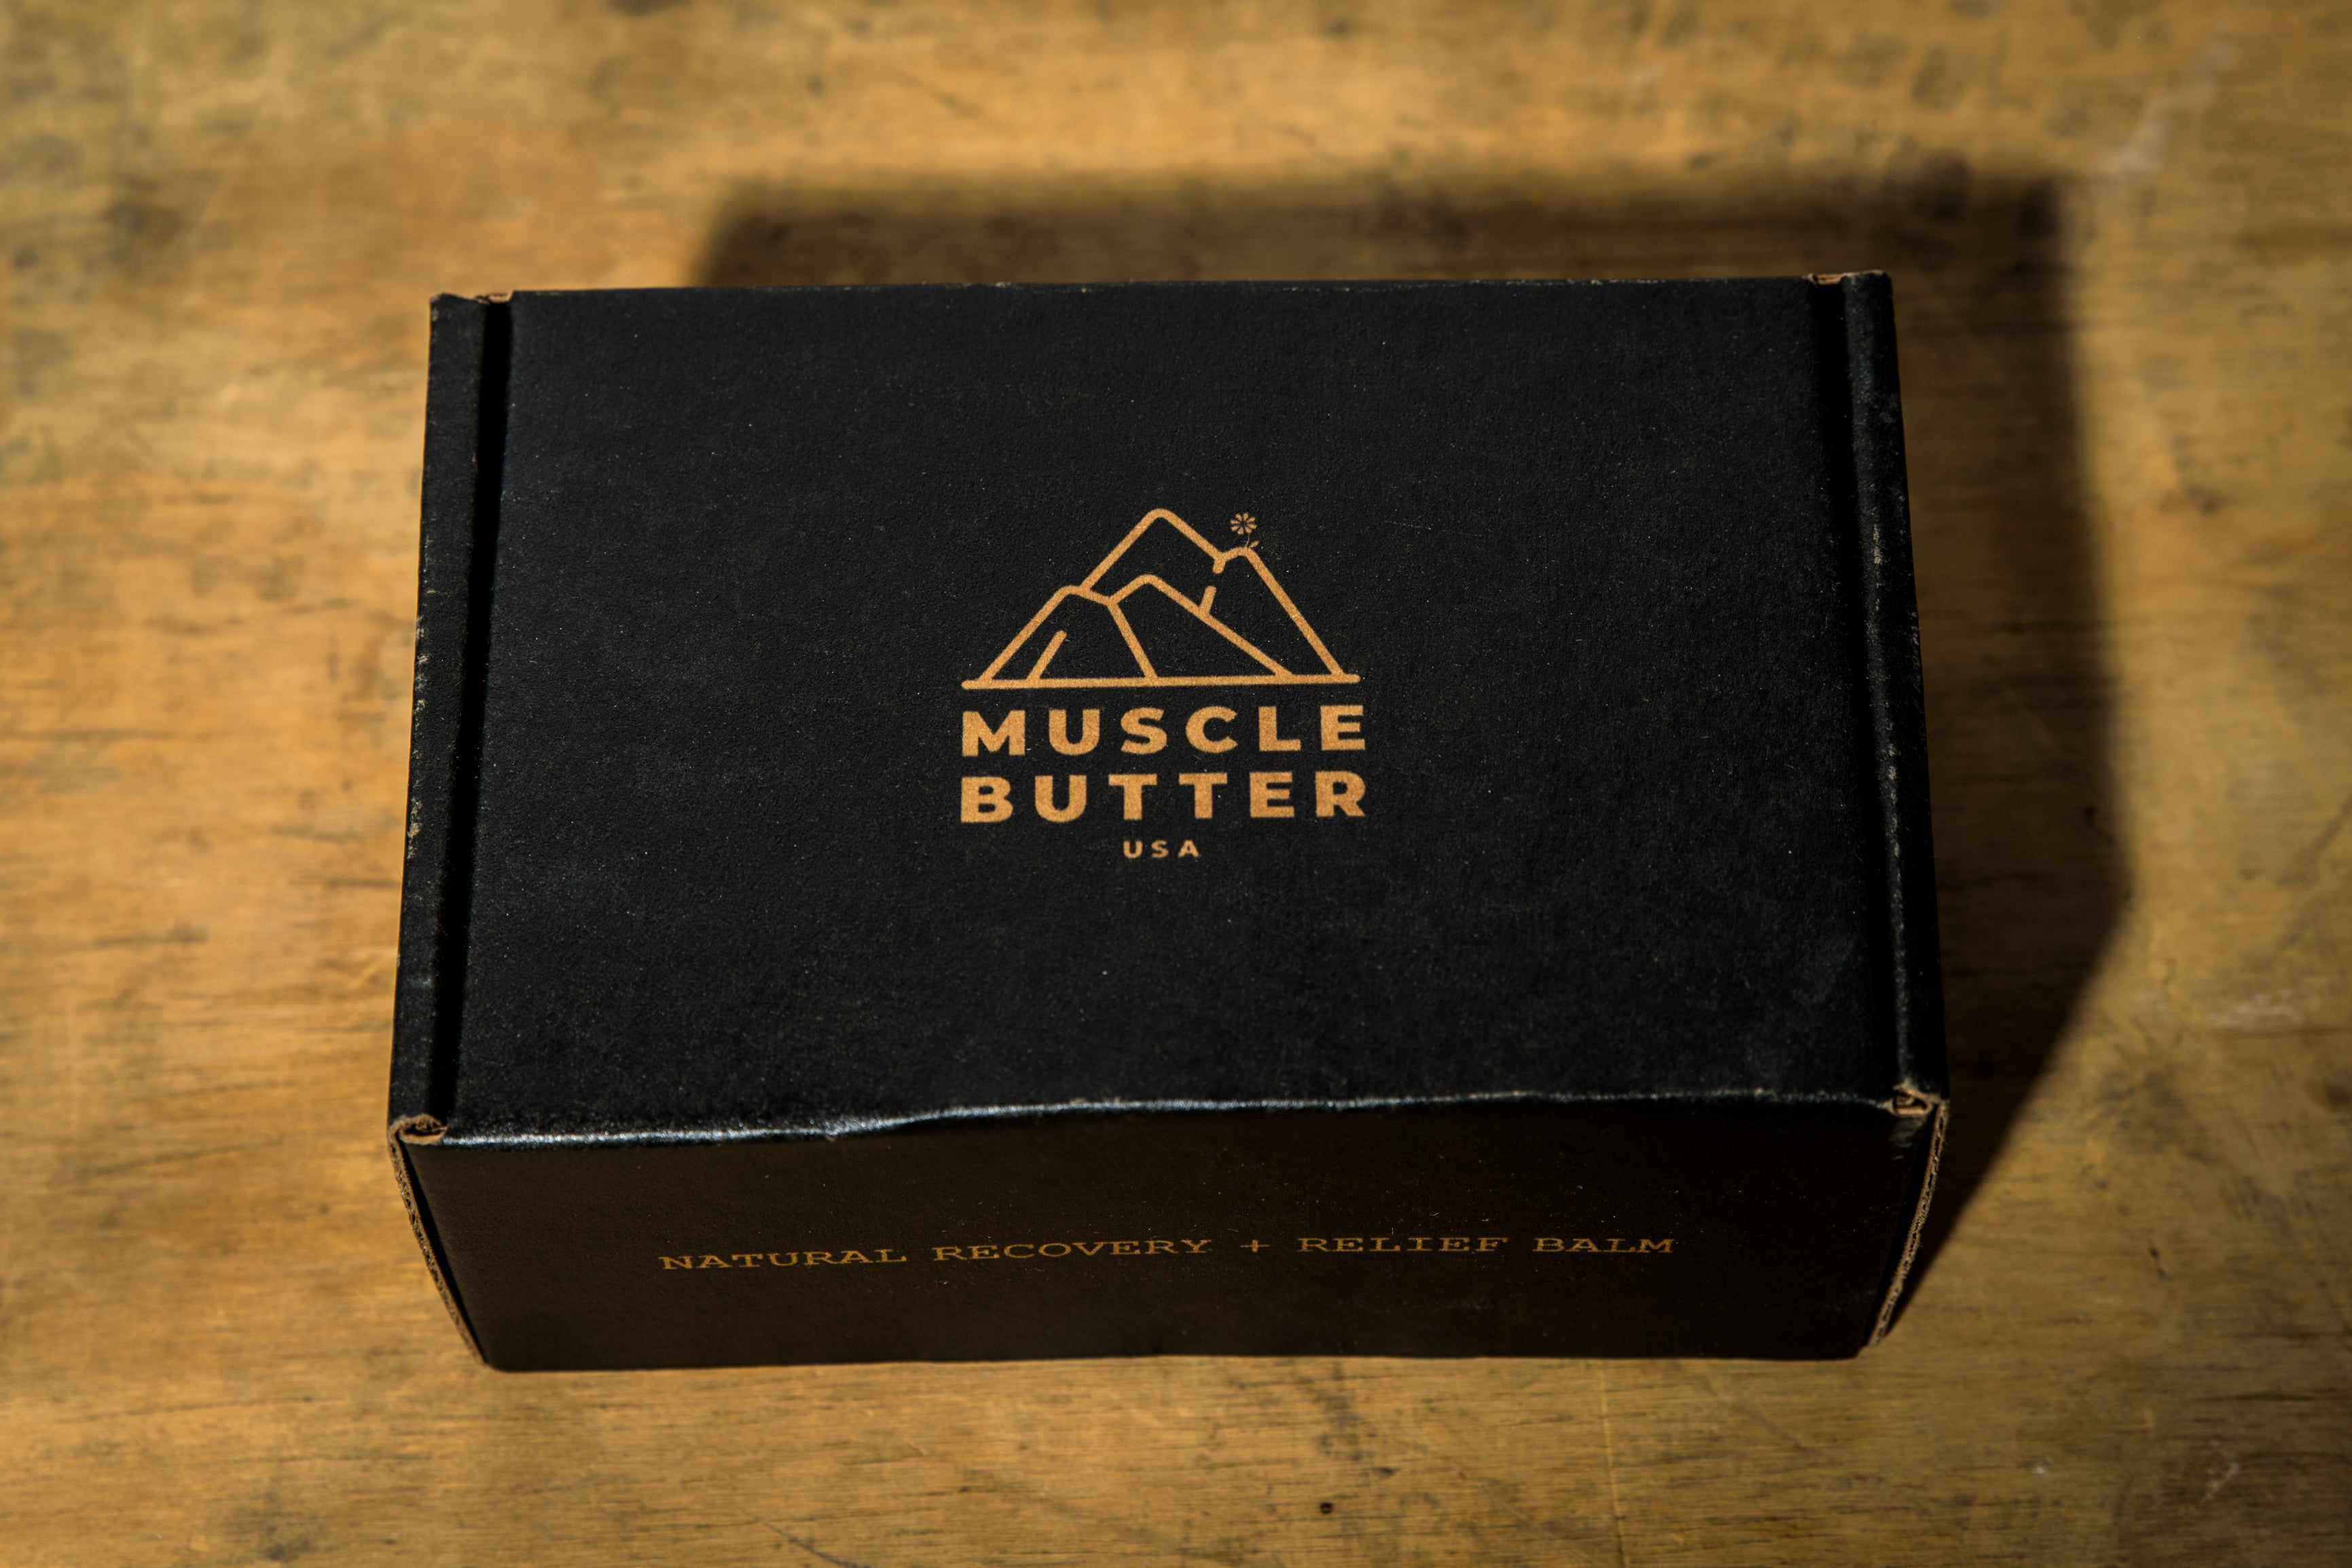 Muscle Butter USA